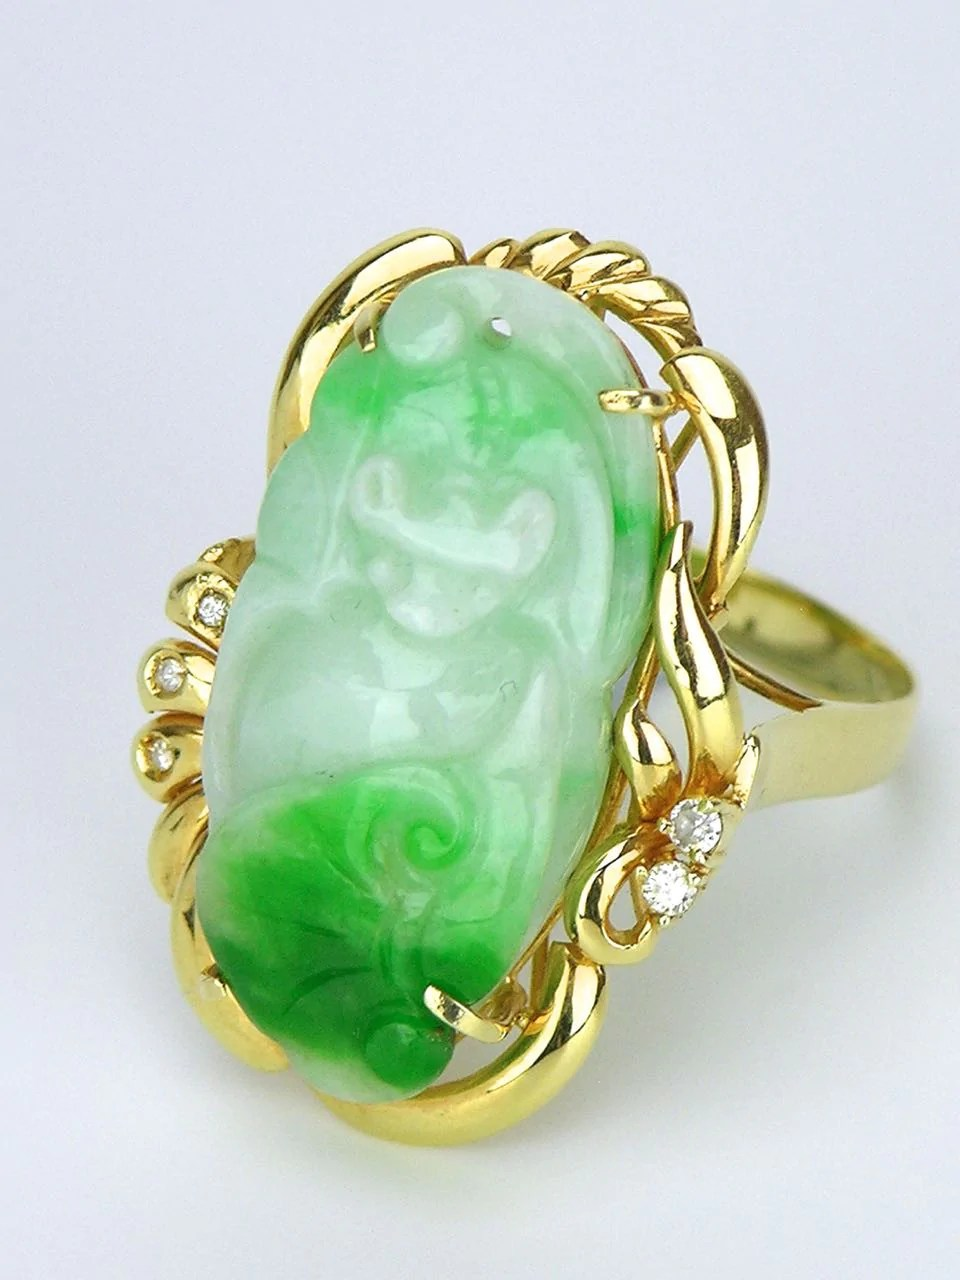 Vintage Chinese carved jade and diamond 14k yellow gold